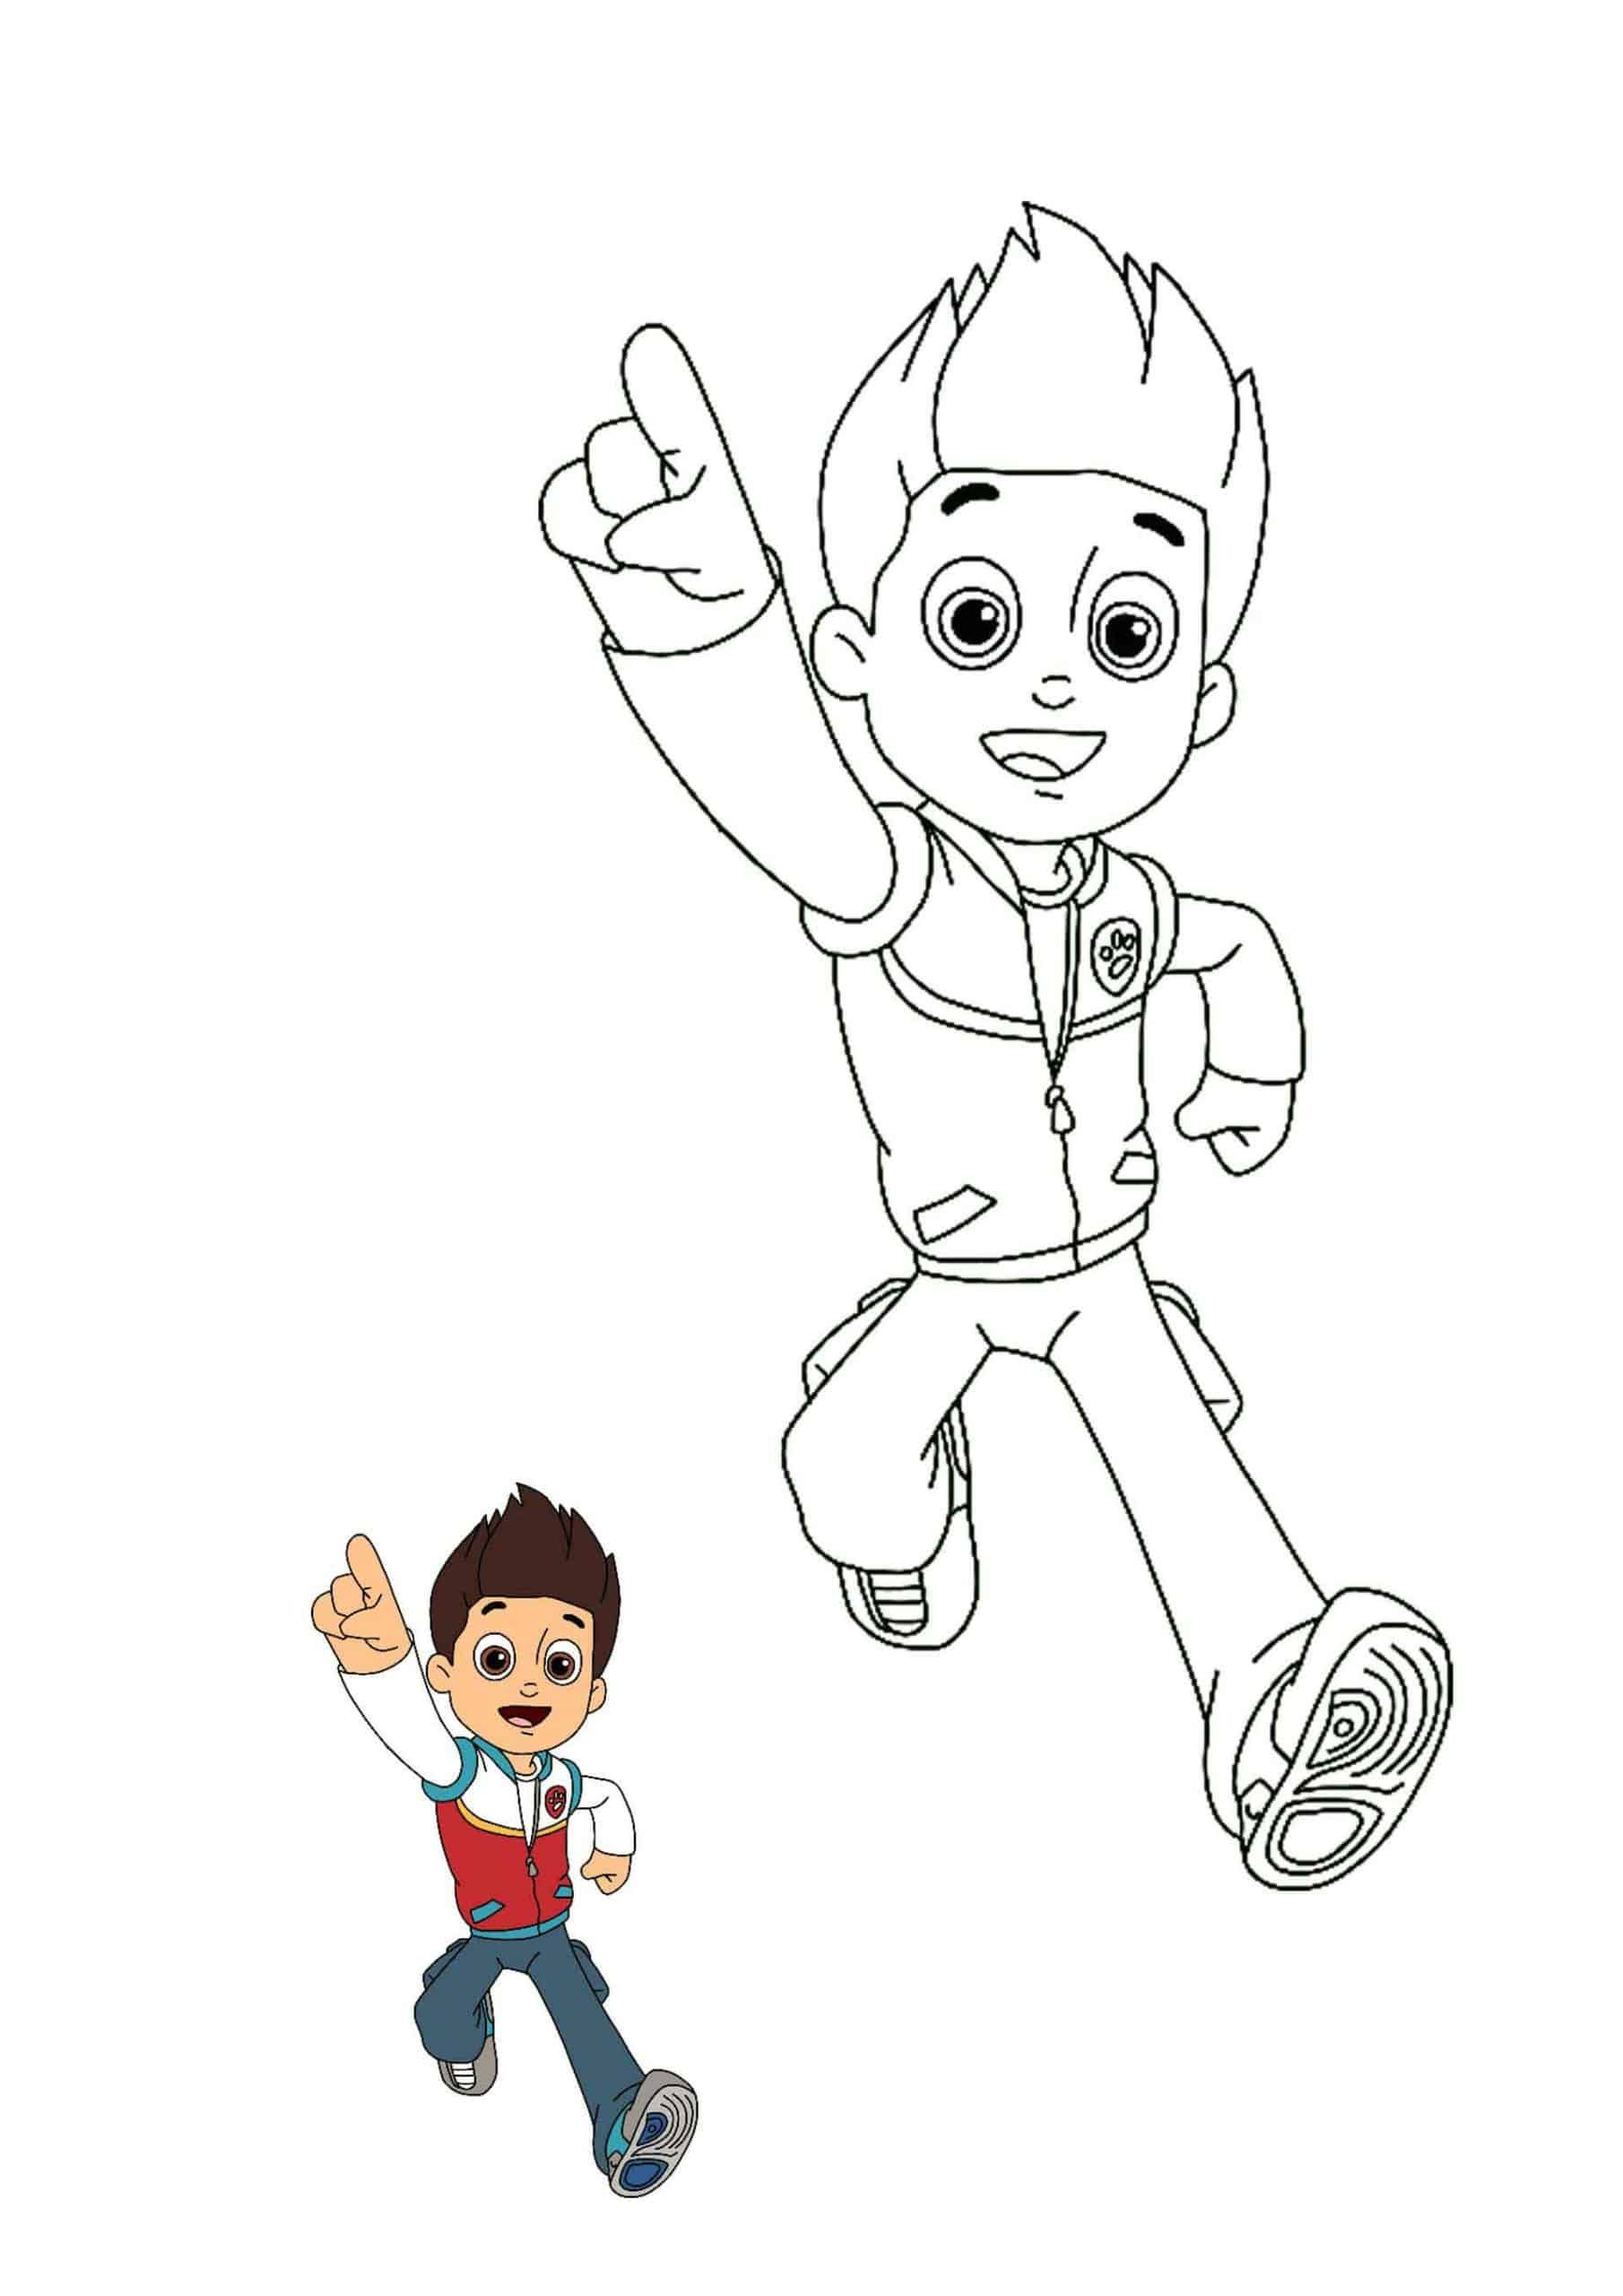 Paw Patrol Ryder Coloring Pages  Paw patrol coloring pages, Paw